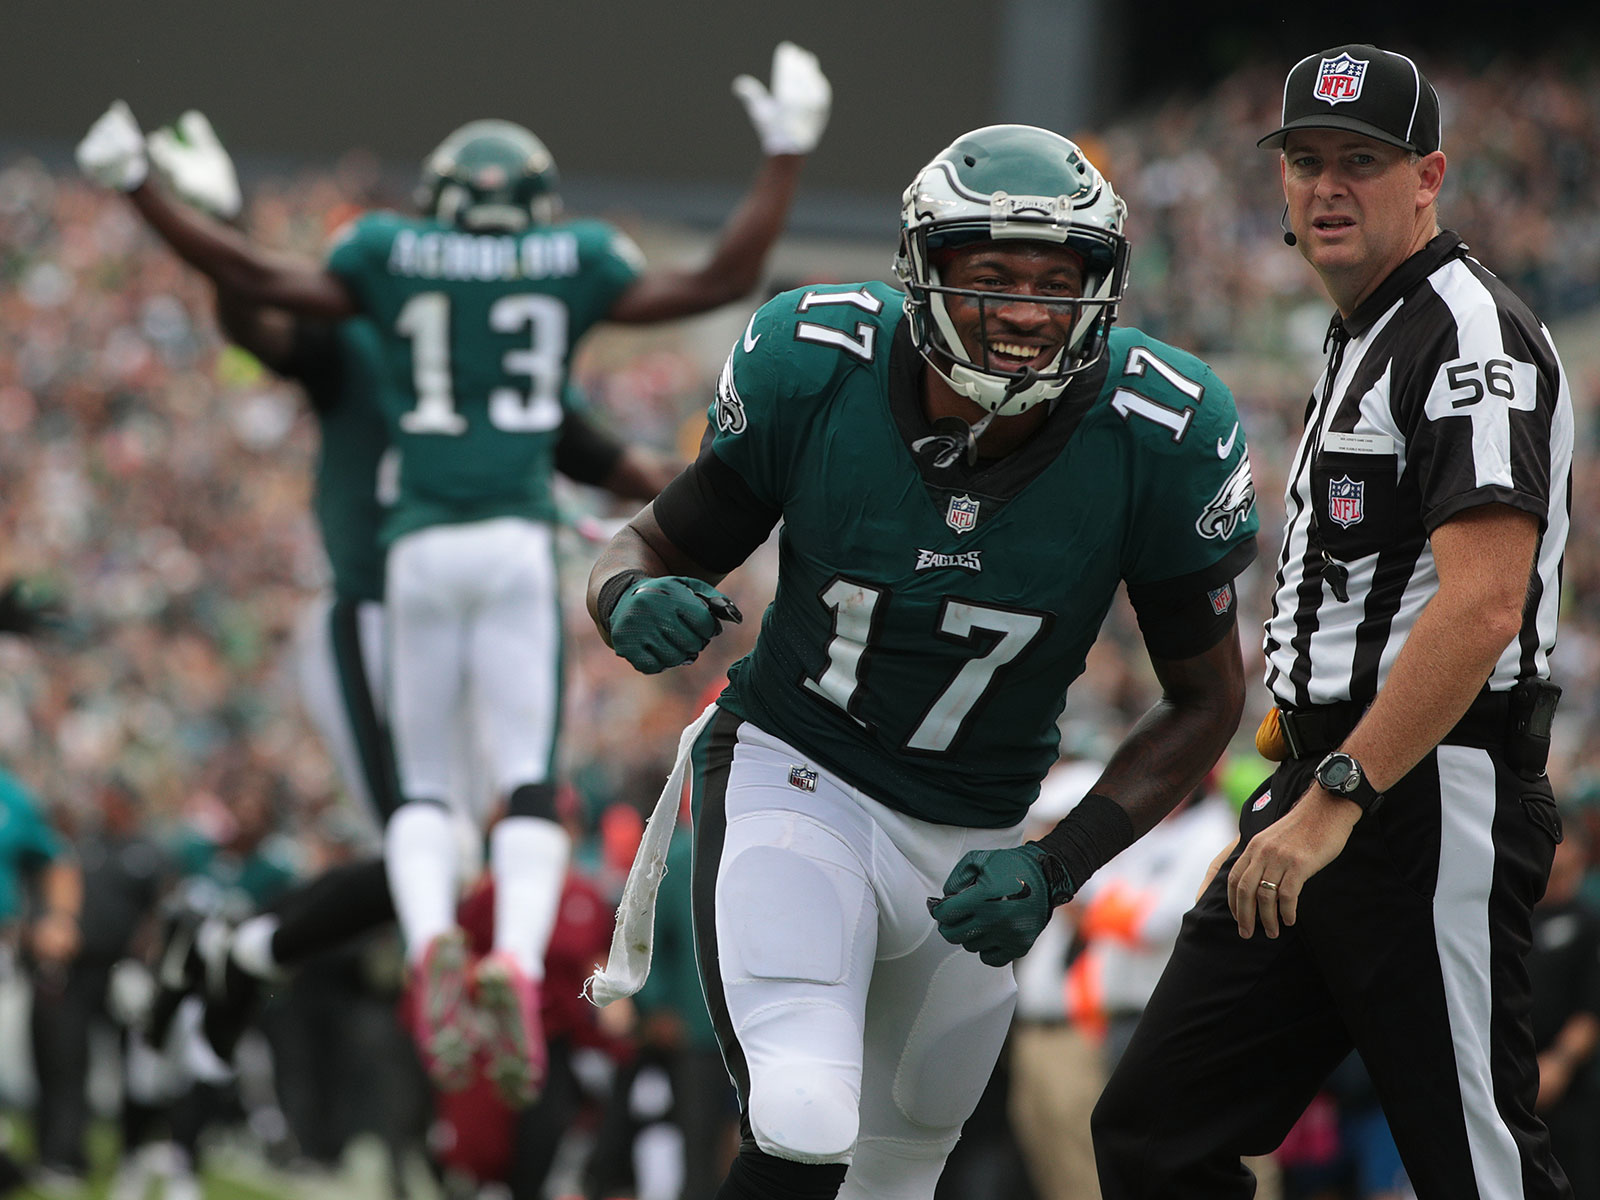 Alshon Jeffery has been a highly effective NFL wideout, so how good could his brother have been?